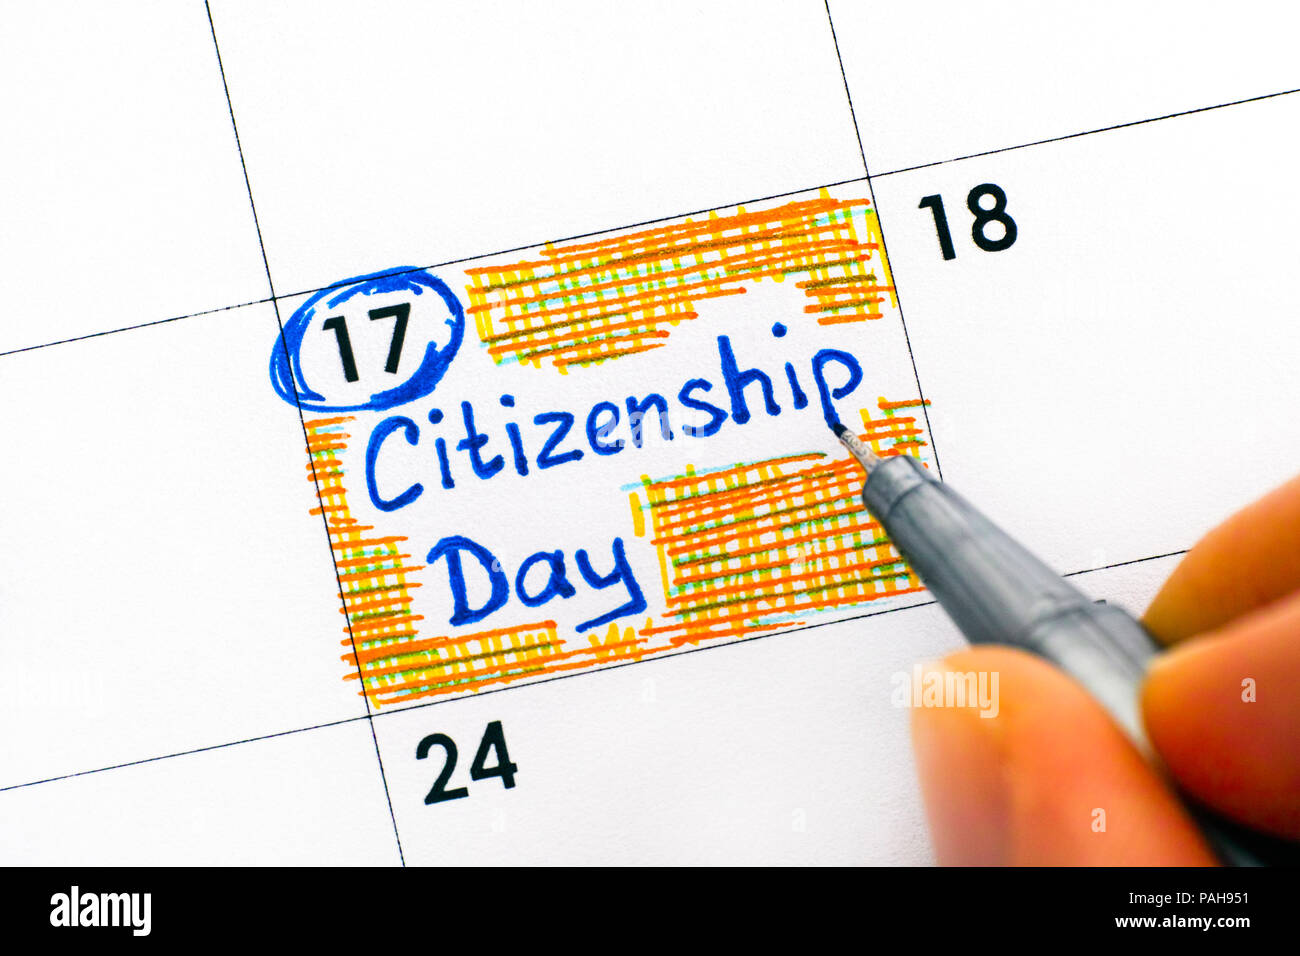 Person fingers with pen writing reminder Citizenship Day in calendar. Close-up. - Stock Image